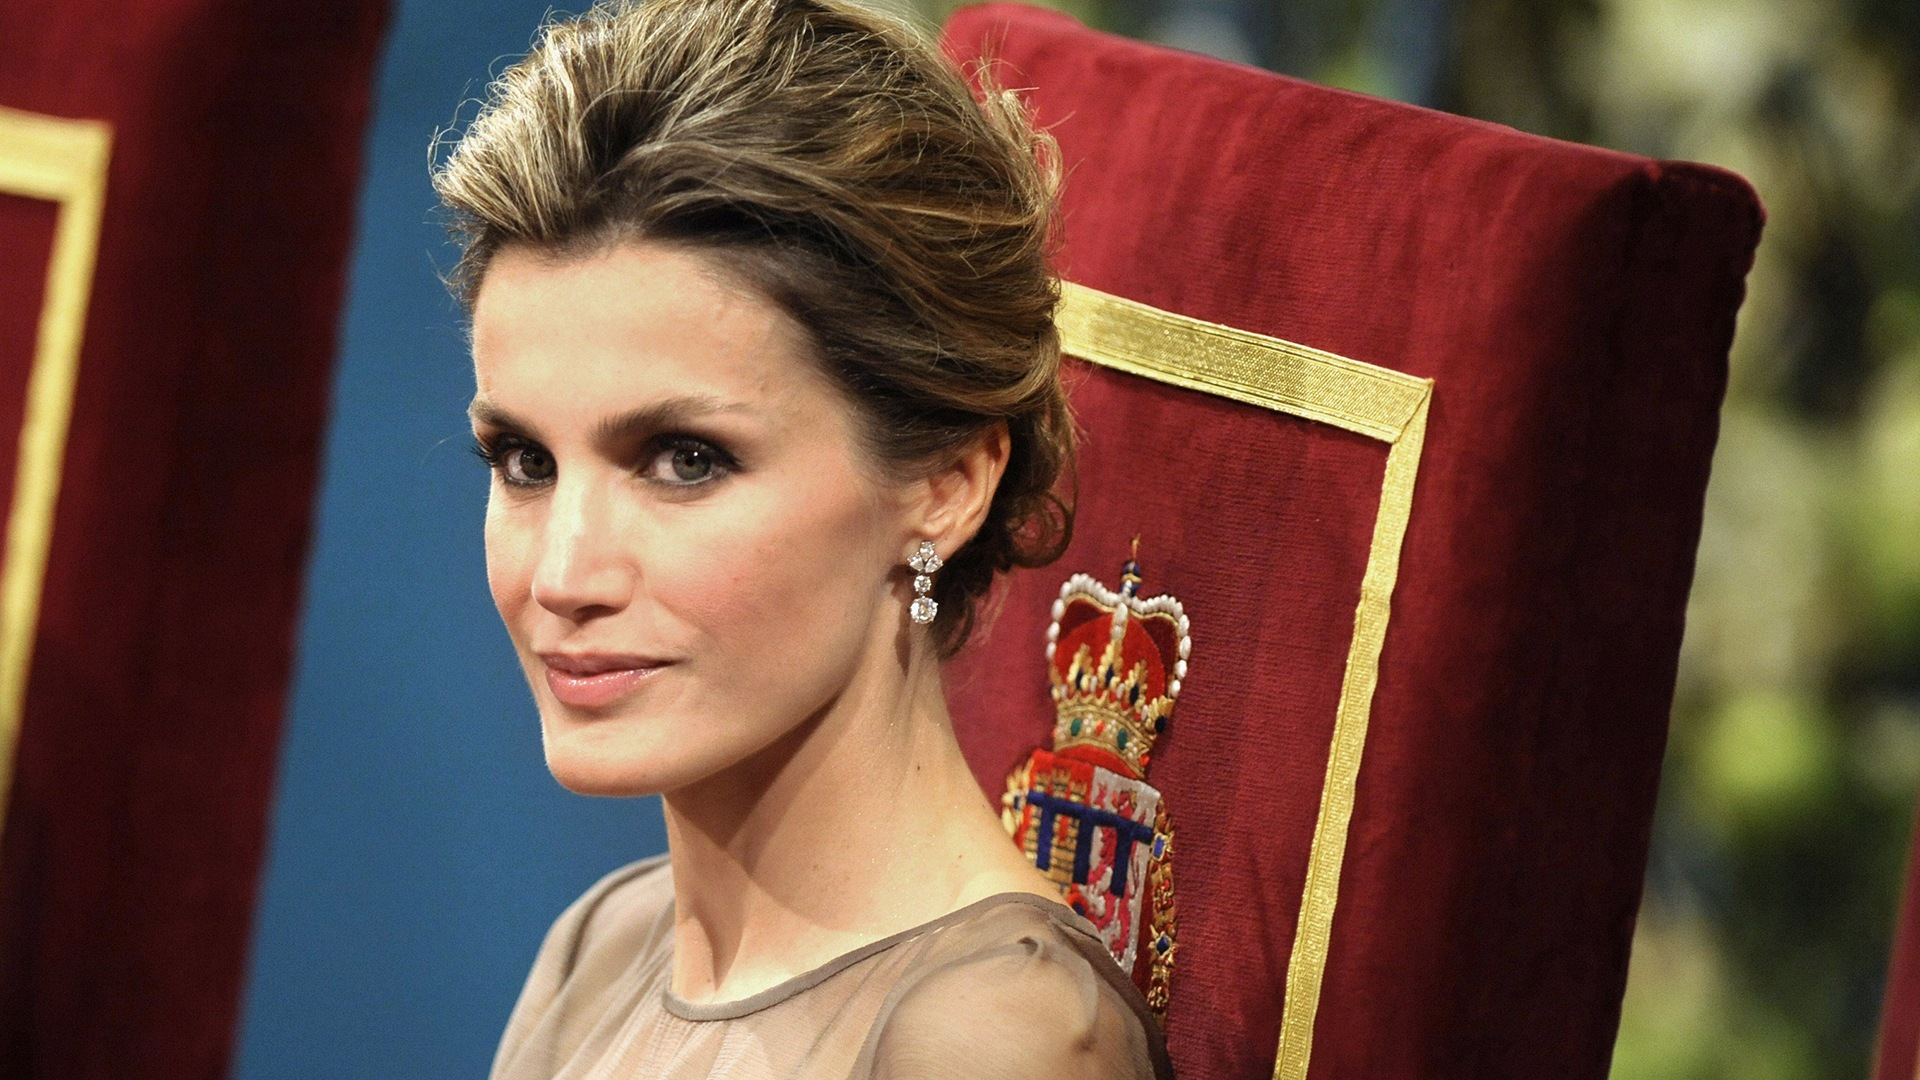 Image: SPAIN-ROYALS-LETIZIA-PEOPLE-FILES